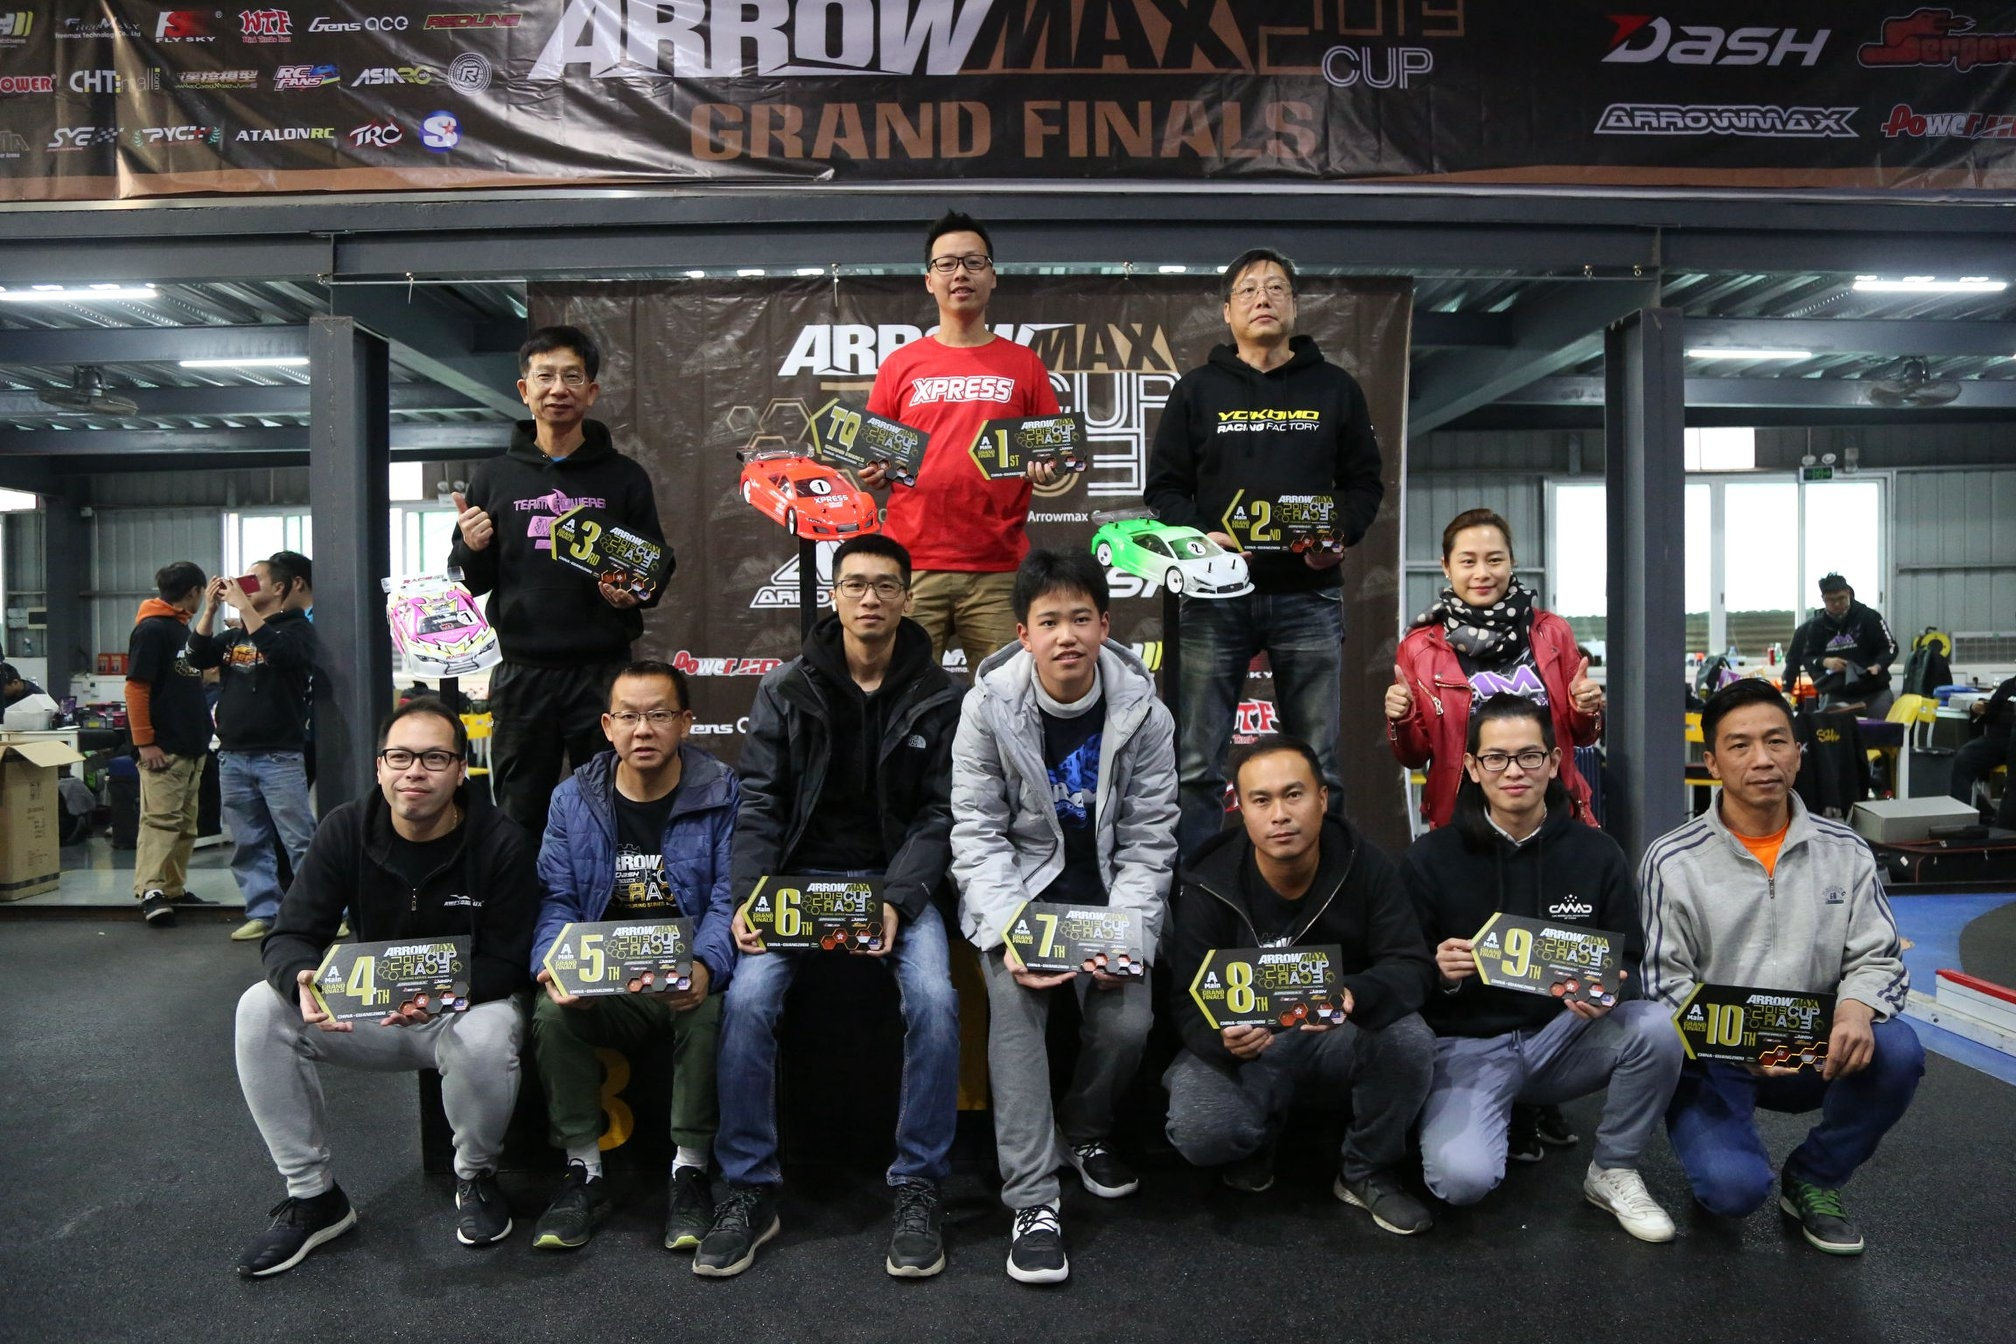 Keith-wins-at-Arrowmax-Cup-Final-Round-2019